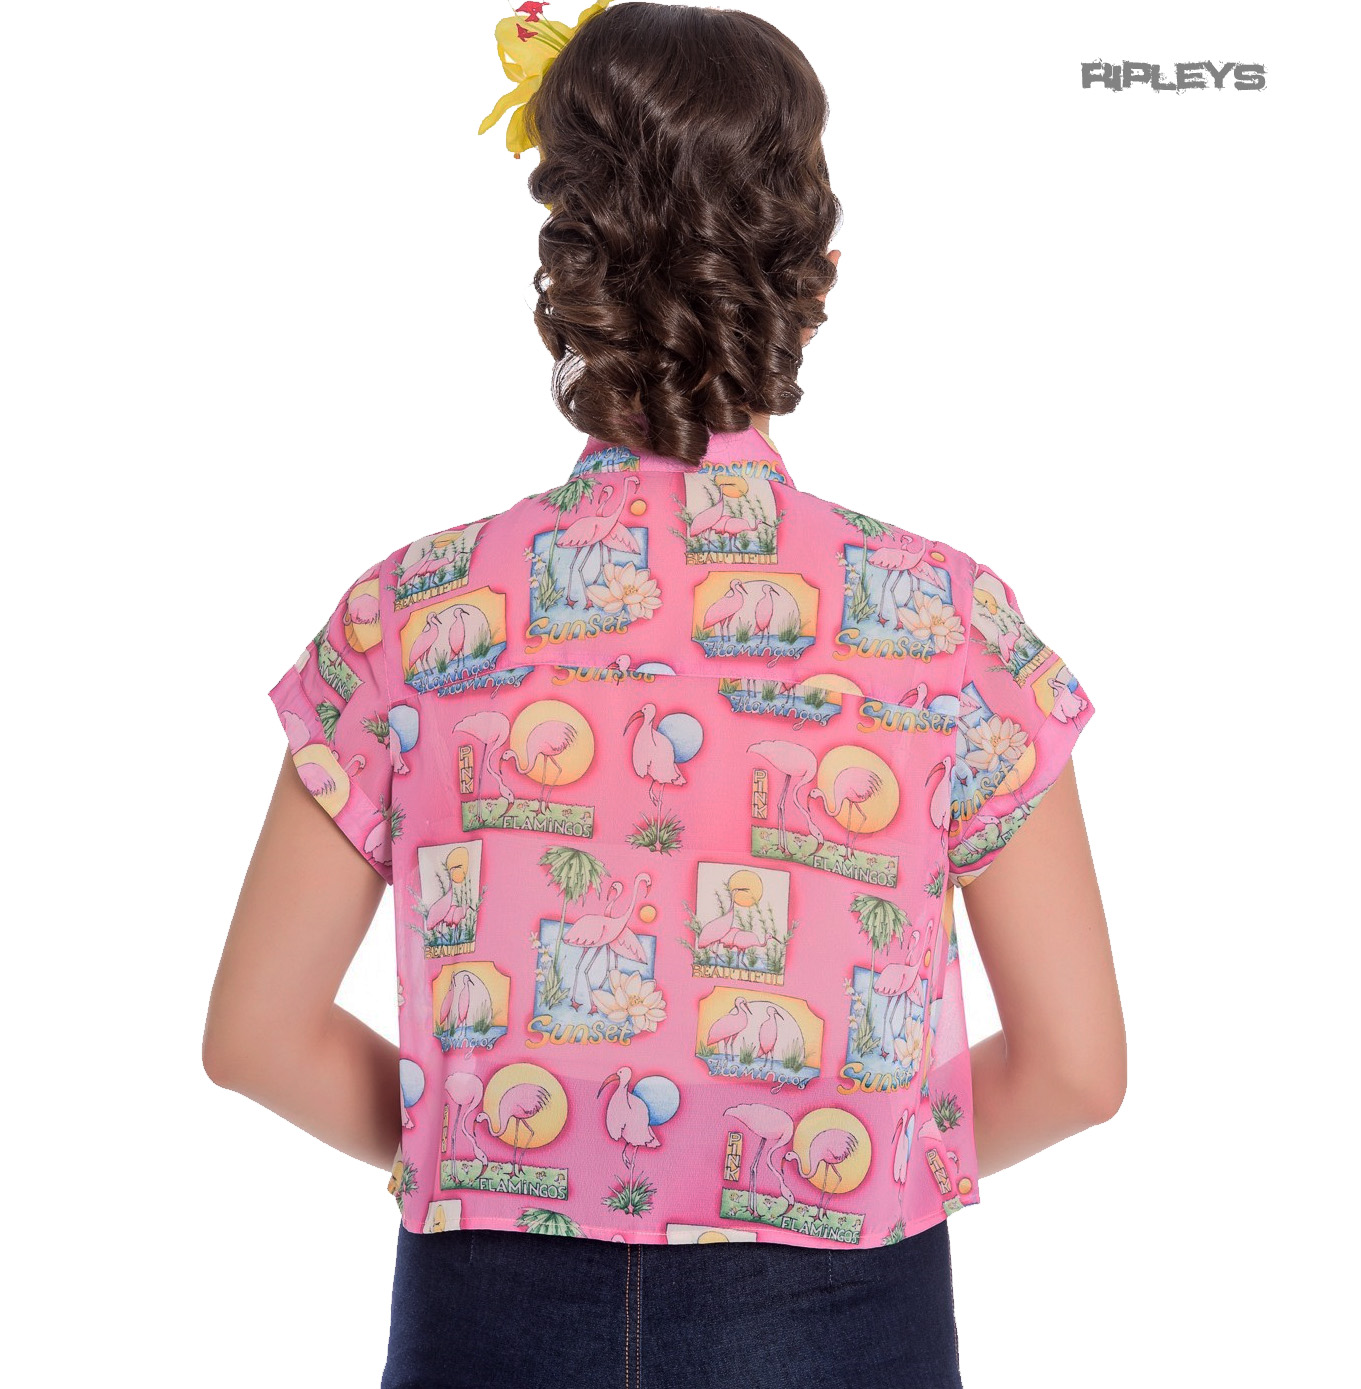 Hell-Bunny-50s-Retro-Top-Pink-Flamingo-MAXINE-Cropped-Blouse-Shirt-All-Sizes thumbnail 32